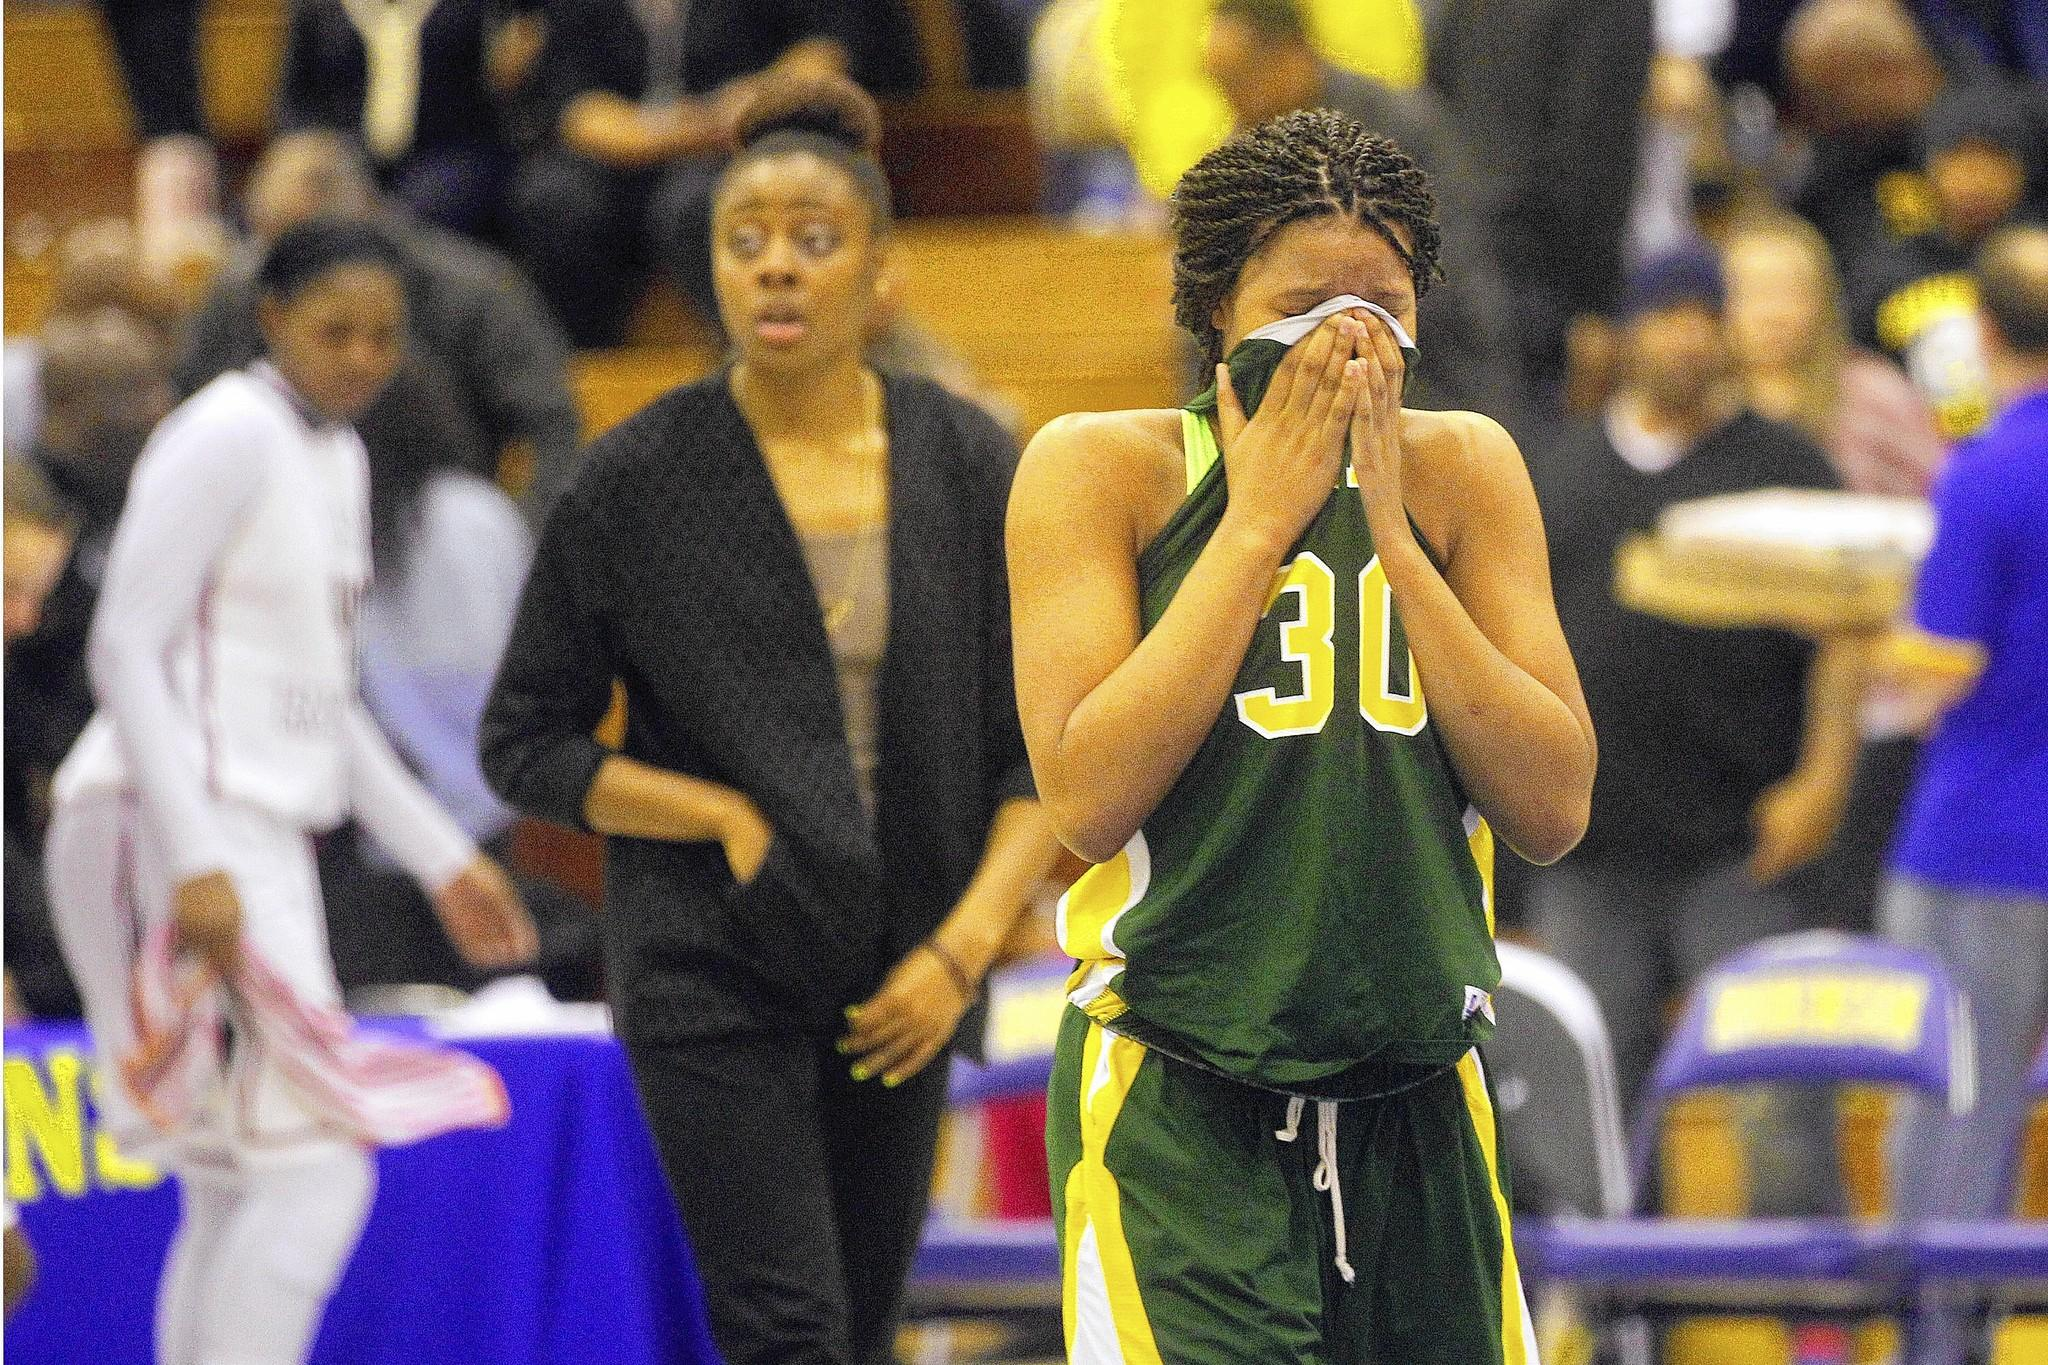 Behtel's Britani Bryson, right, cries after losing to Stonewall Jackson during Saturday's Group 6A state semifinal game at Robinson High School in Fairfax.